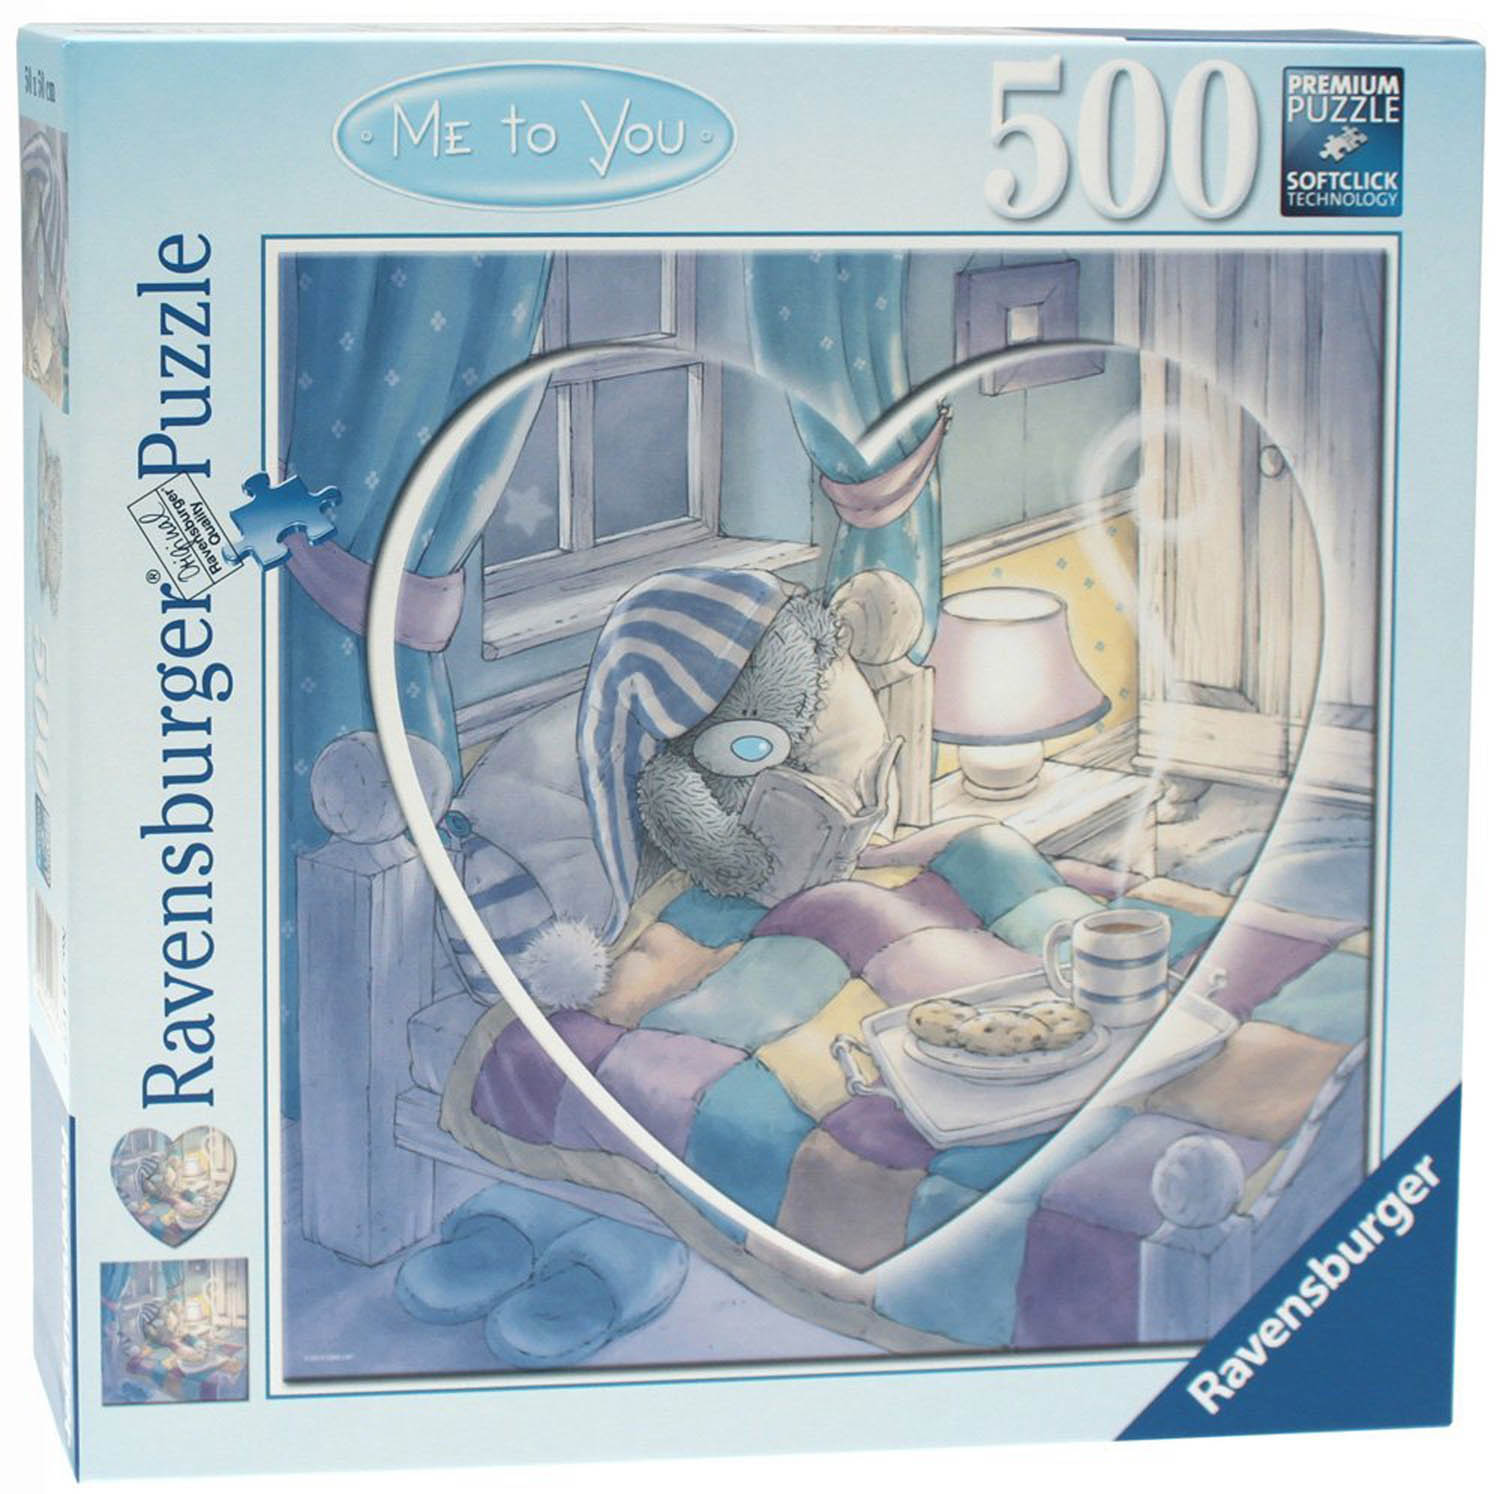 ravensburger-me-to-you-heart-500-piece-heart-in-a-square-puzzle-2.jpg